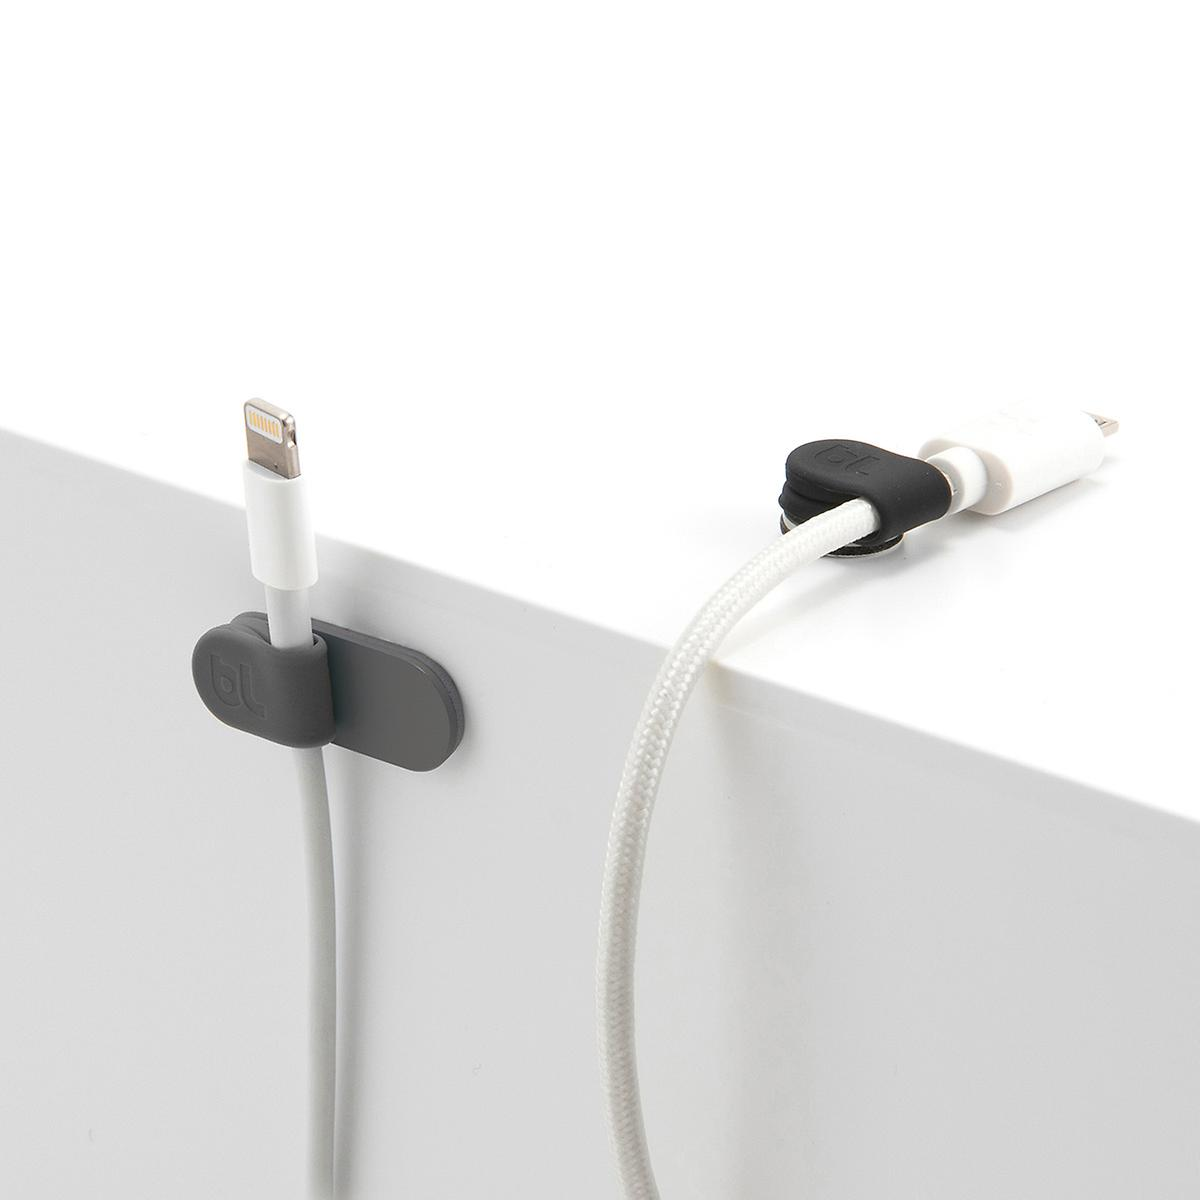 MagDrop Magnetic Cable Drops